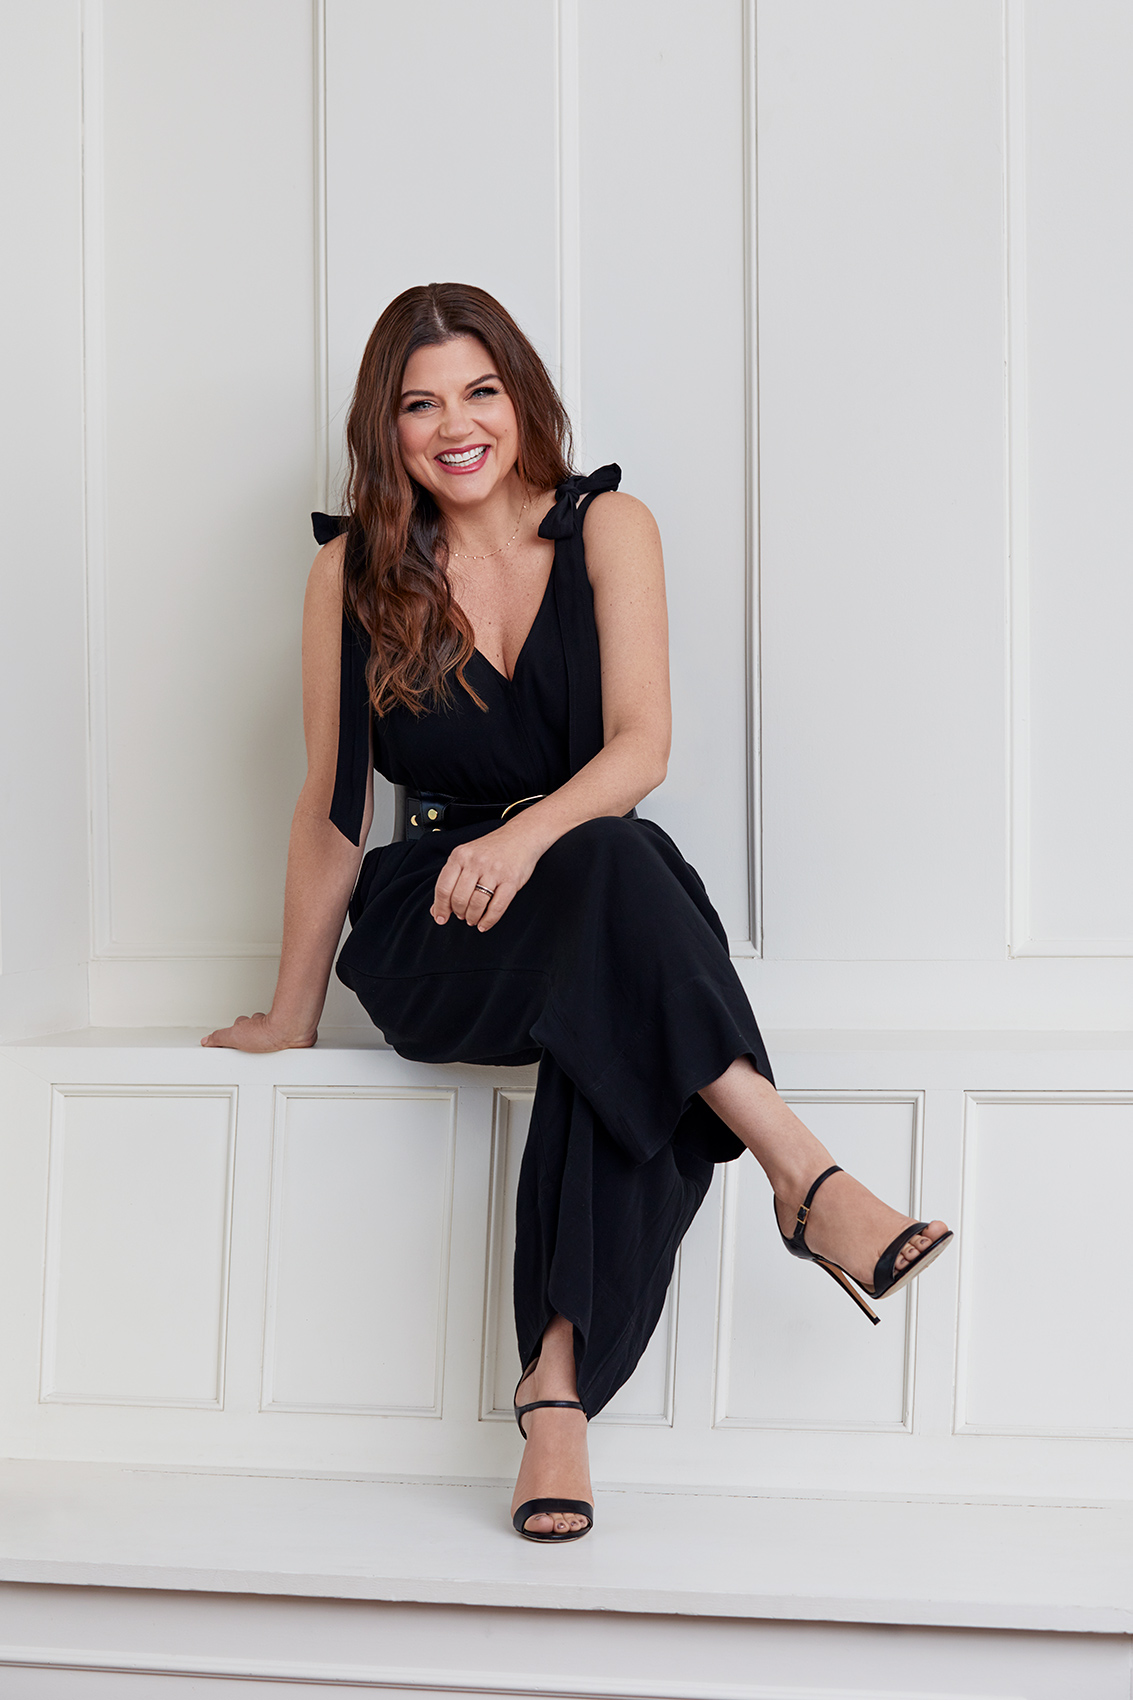 Kimberly_Genevieve_Tiffani_Thiessen_02